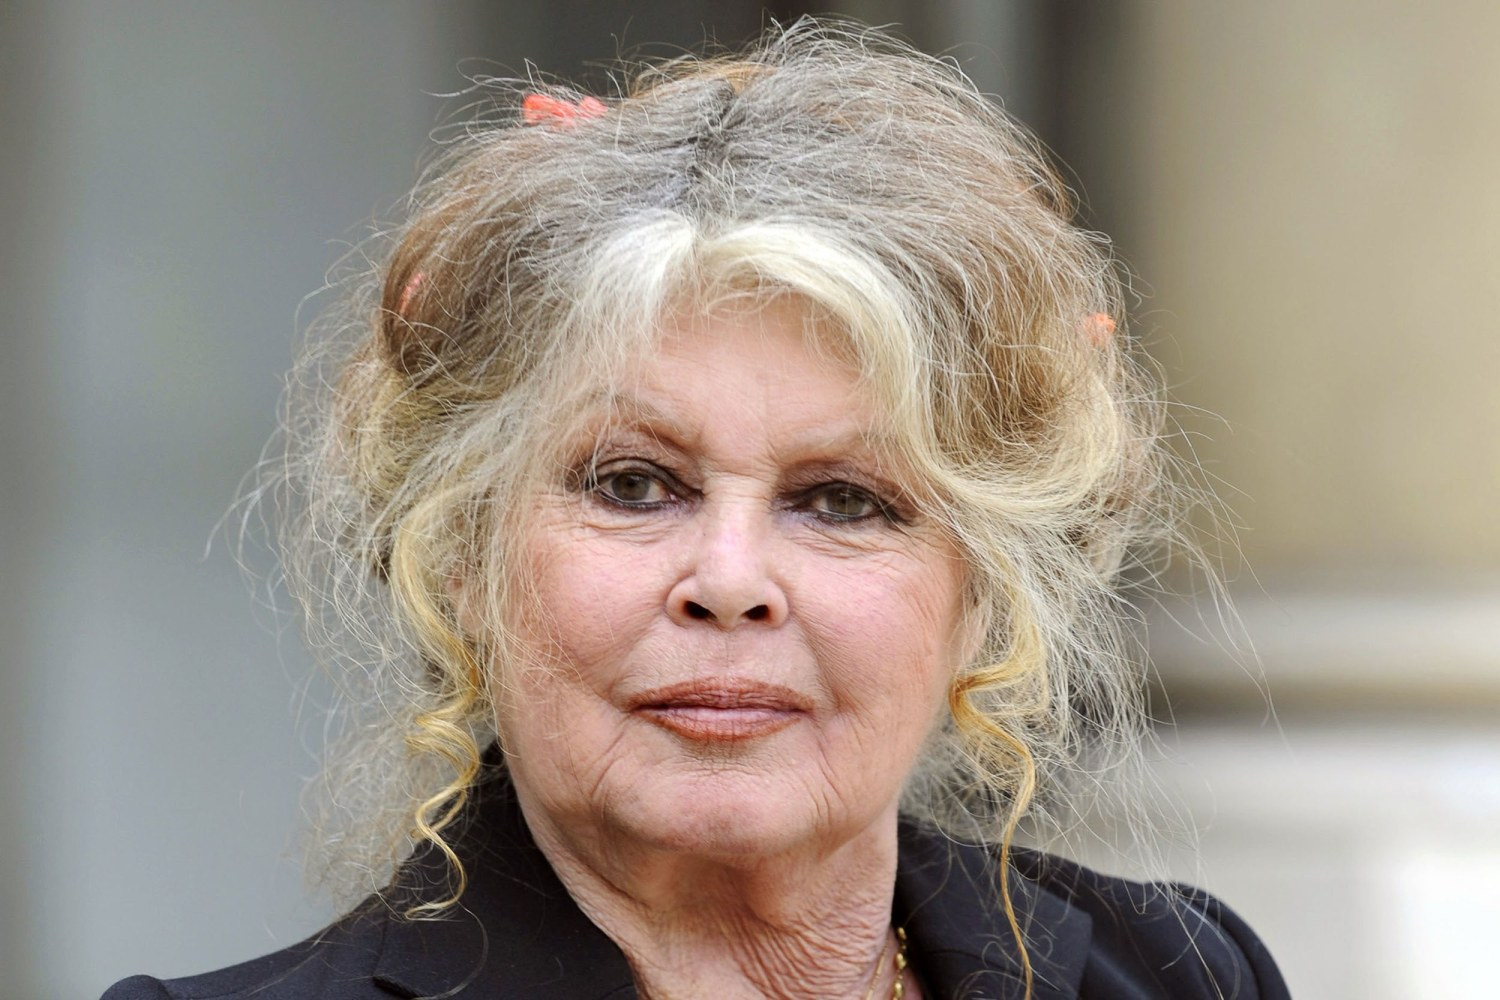 Brigitte Bardot joins #MeToo backlash, lambasts the movement 'hypocritical, ridiculous'